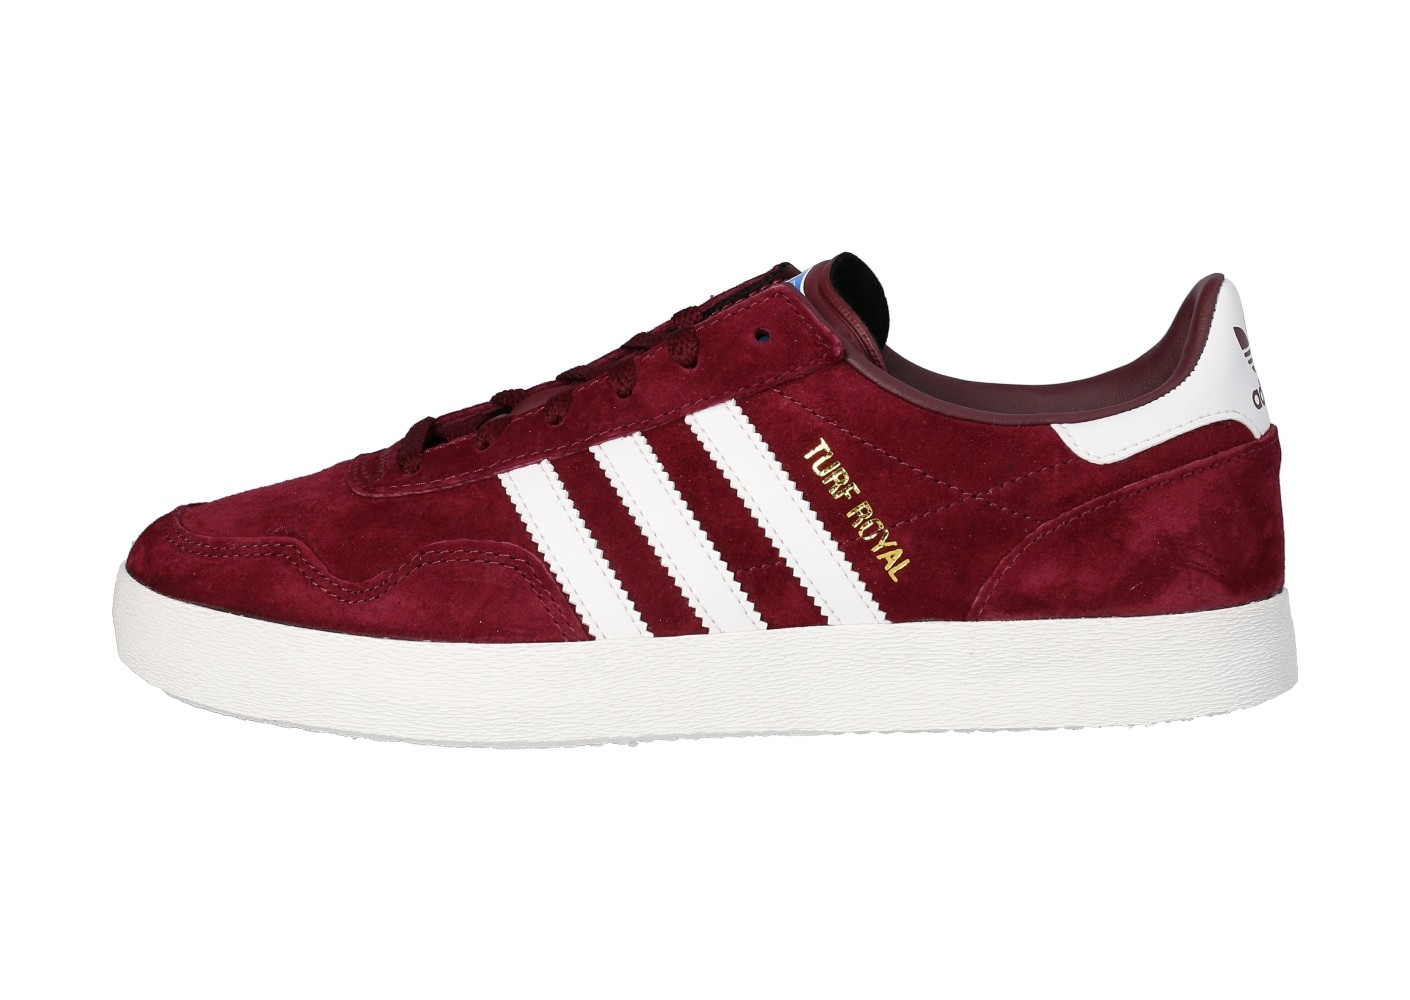 adidas Turf Royal Bordeaux - Chaussures Baskets homme - Snaidero-usa